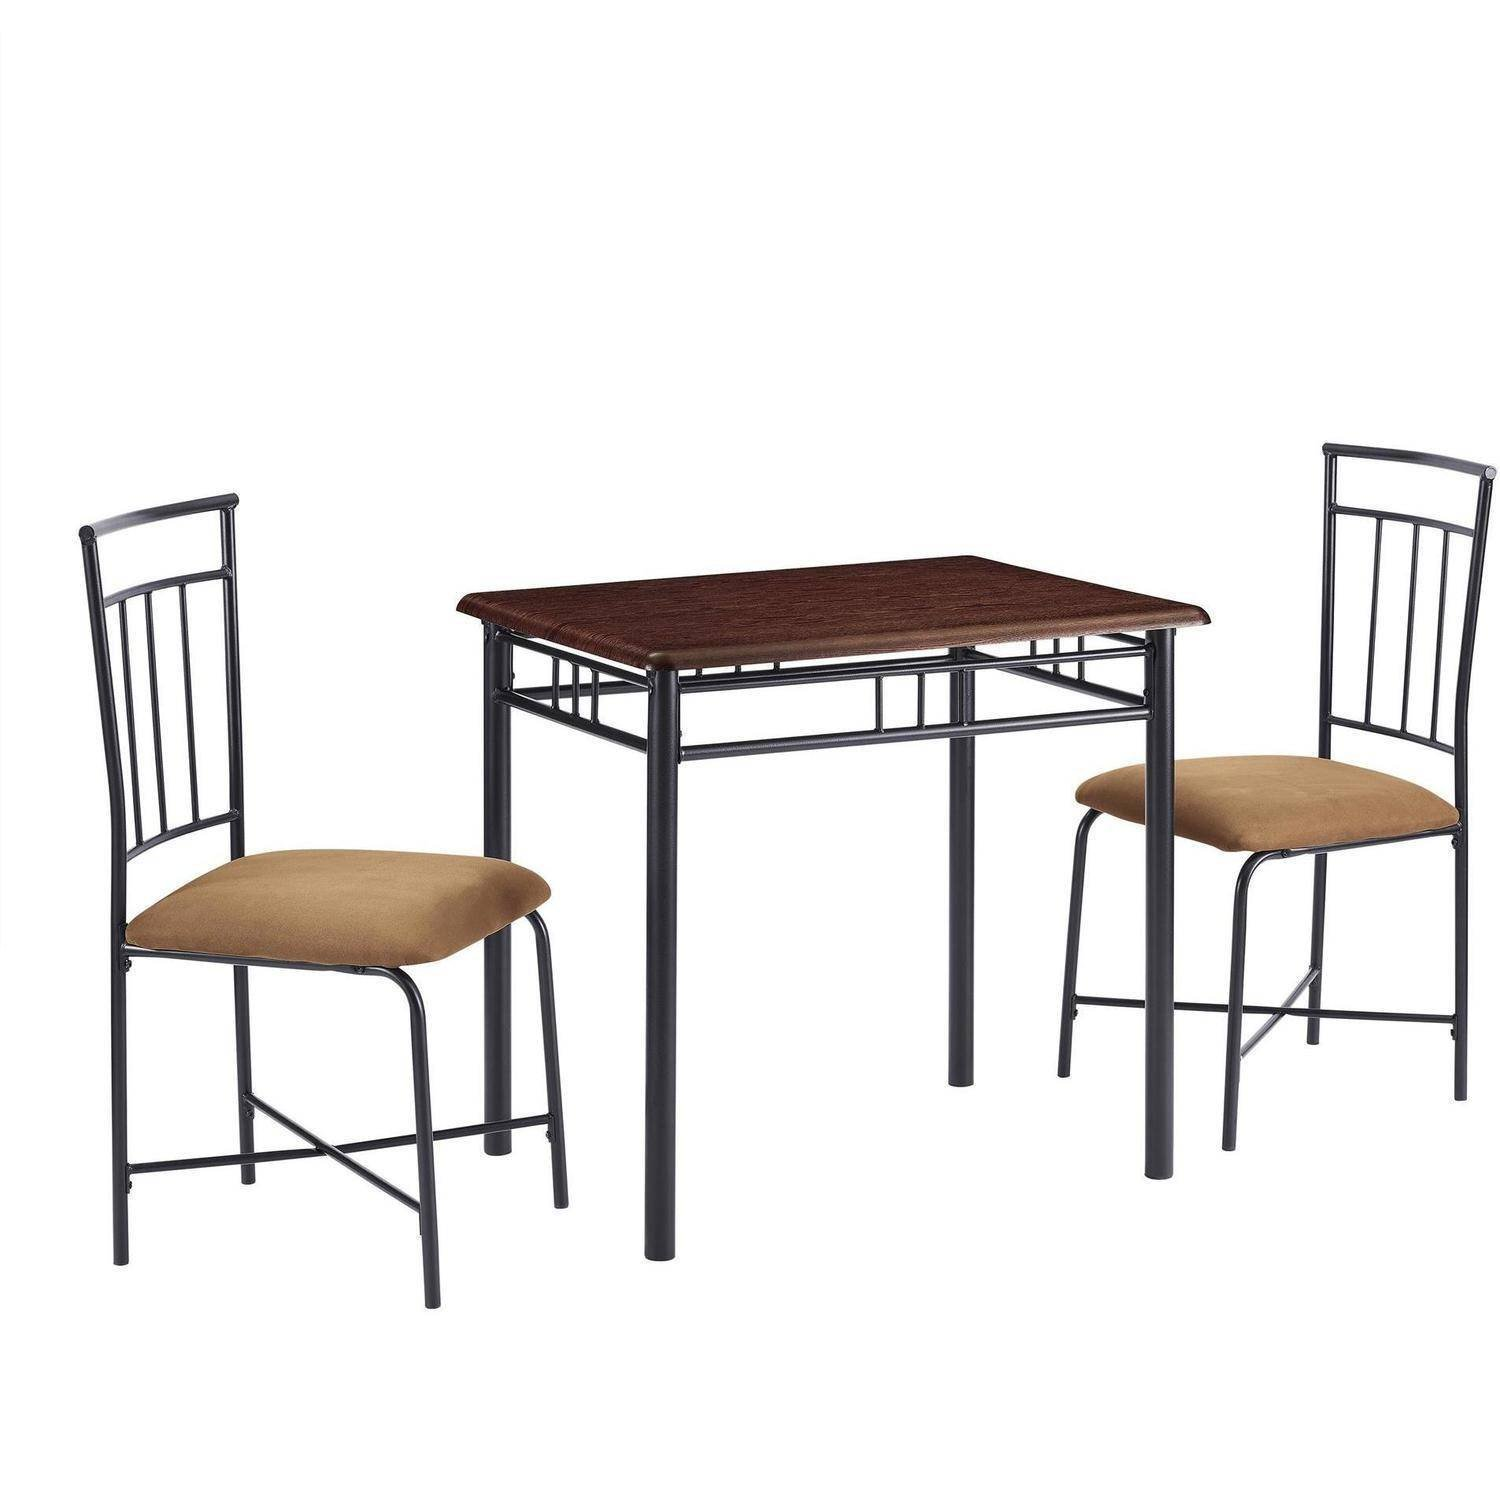 Compact And Stylish 3-Piece Dining Set, Padded Seats for Extra Comfort, Table with an Easy to Clean Deep Walnut Wood Top, Sturdy and Long Lasting Solid Wood And Metal Construction, Walnut Finish